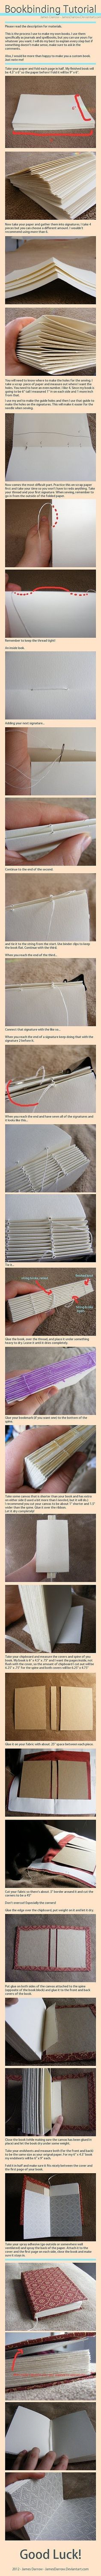 Make your own book. DIY book binding.